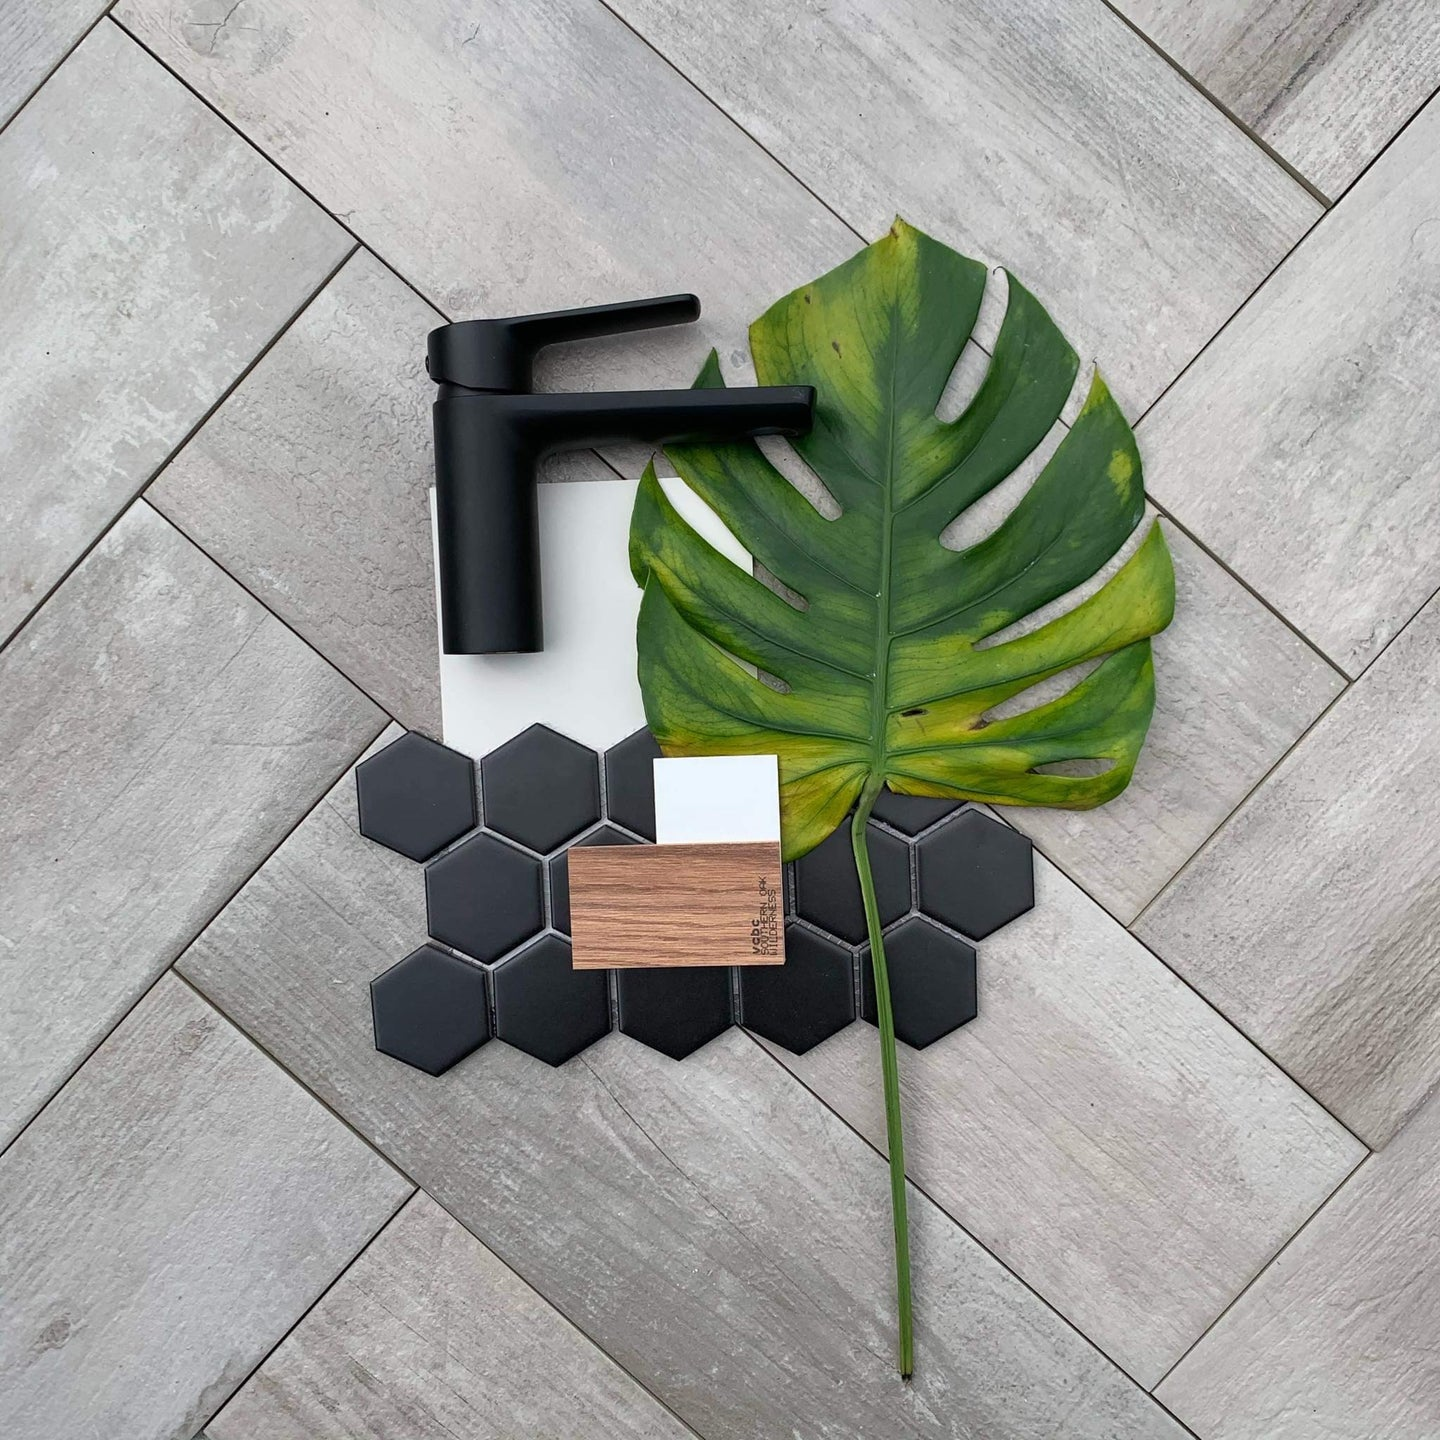 Woodlook Tiles